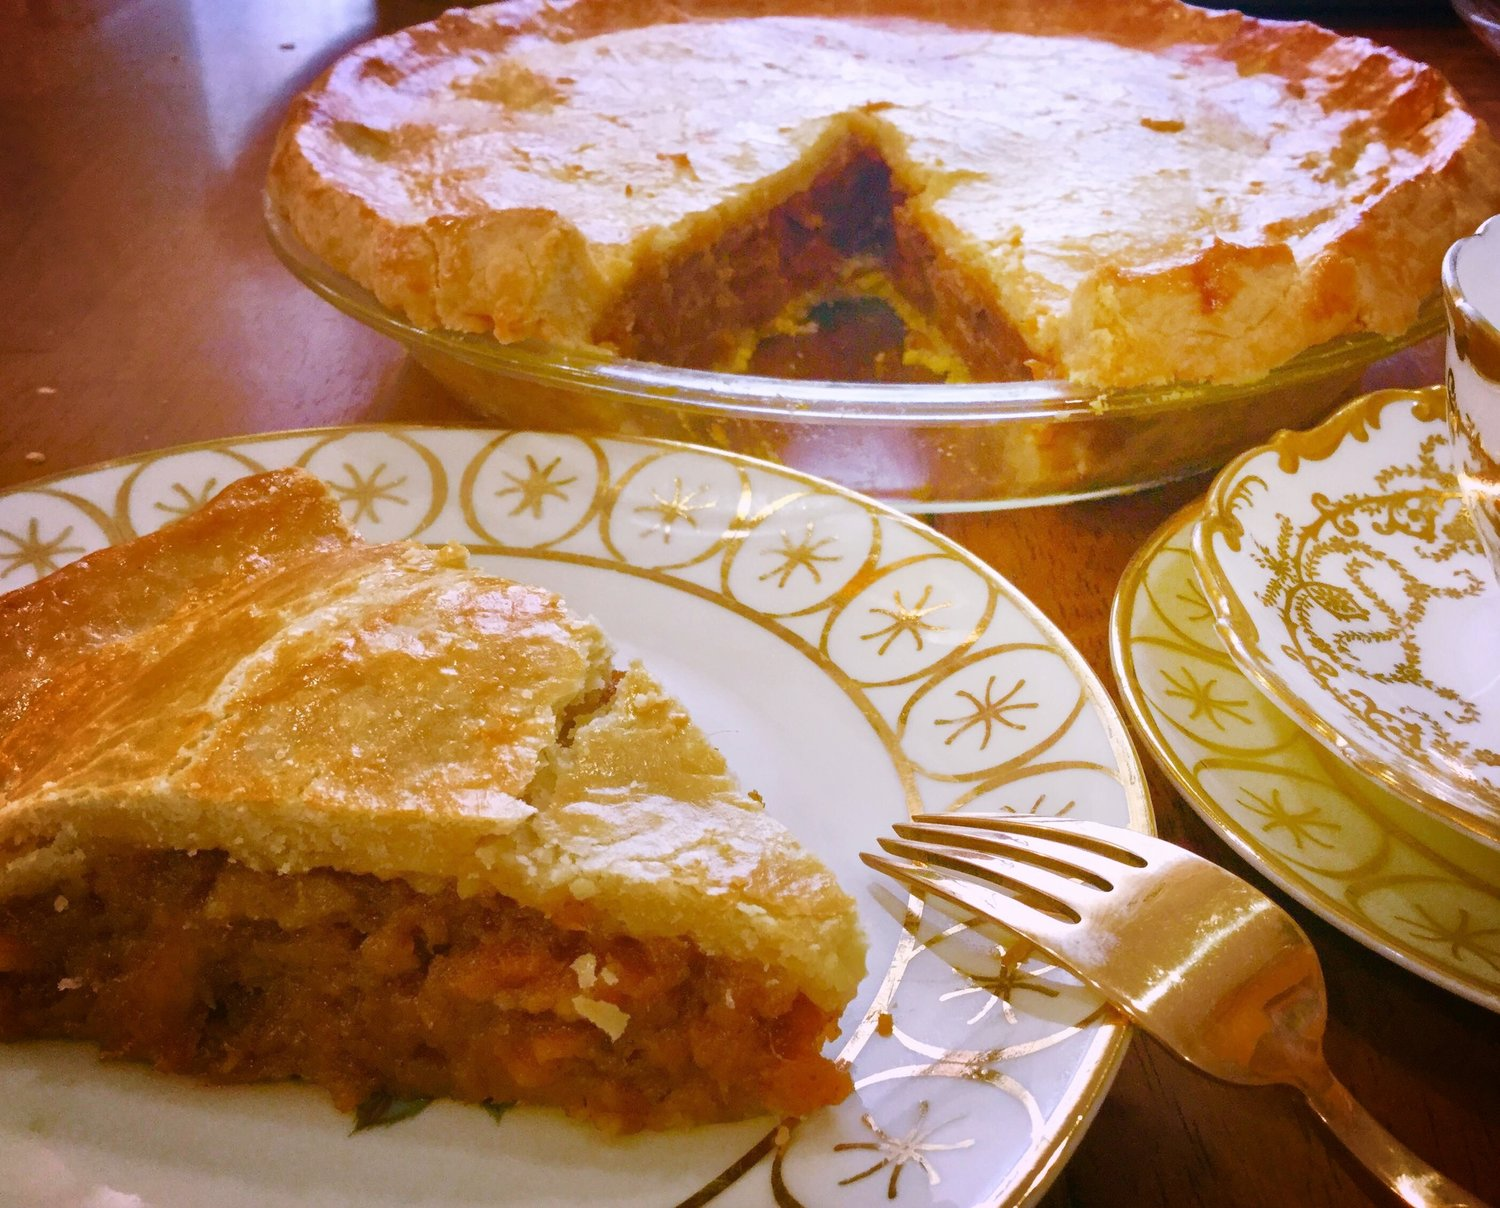 Mariby Corpening's Double-Crusted Pie With Roasted Sweet Potatoes